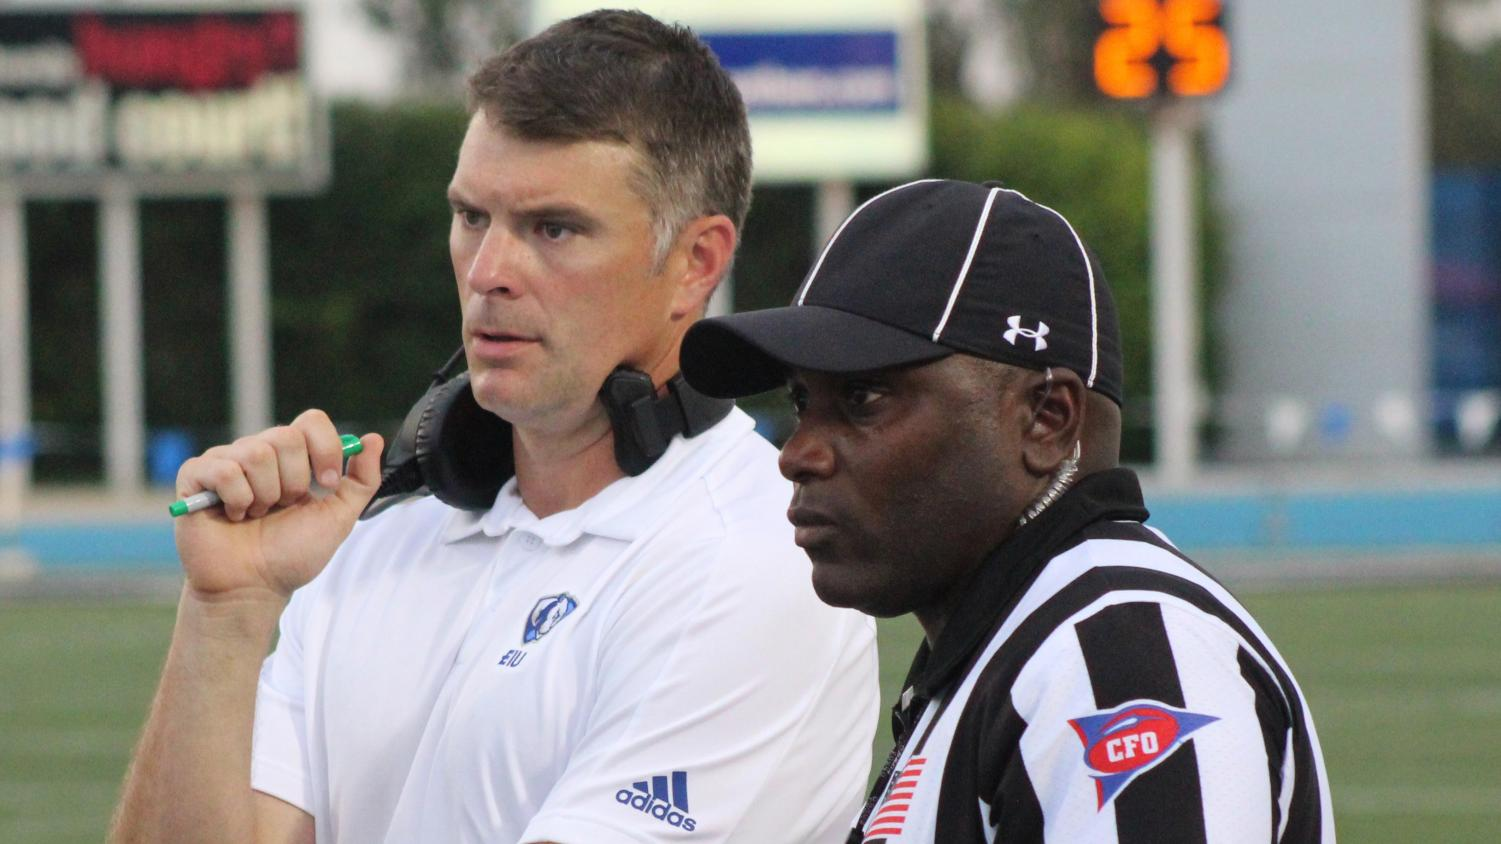 Eastern head coach Adam Cushing talks with the line judge during an official review in the Panthers' game against Tennessee Tech Sept. 28. Eastern lost the game 40-29.